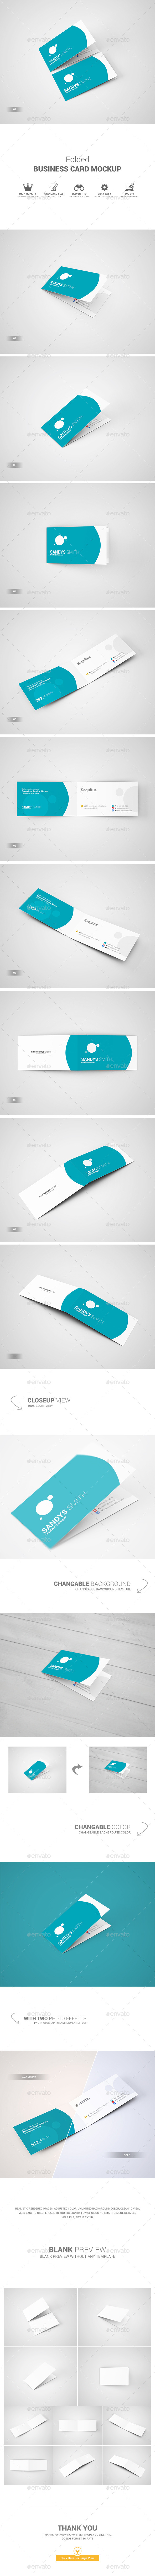 Folded Business Card Mockup #design Download: http://graphicriver ...